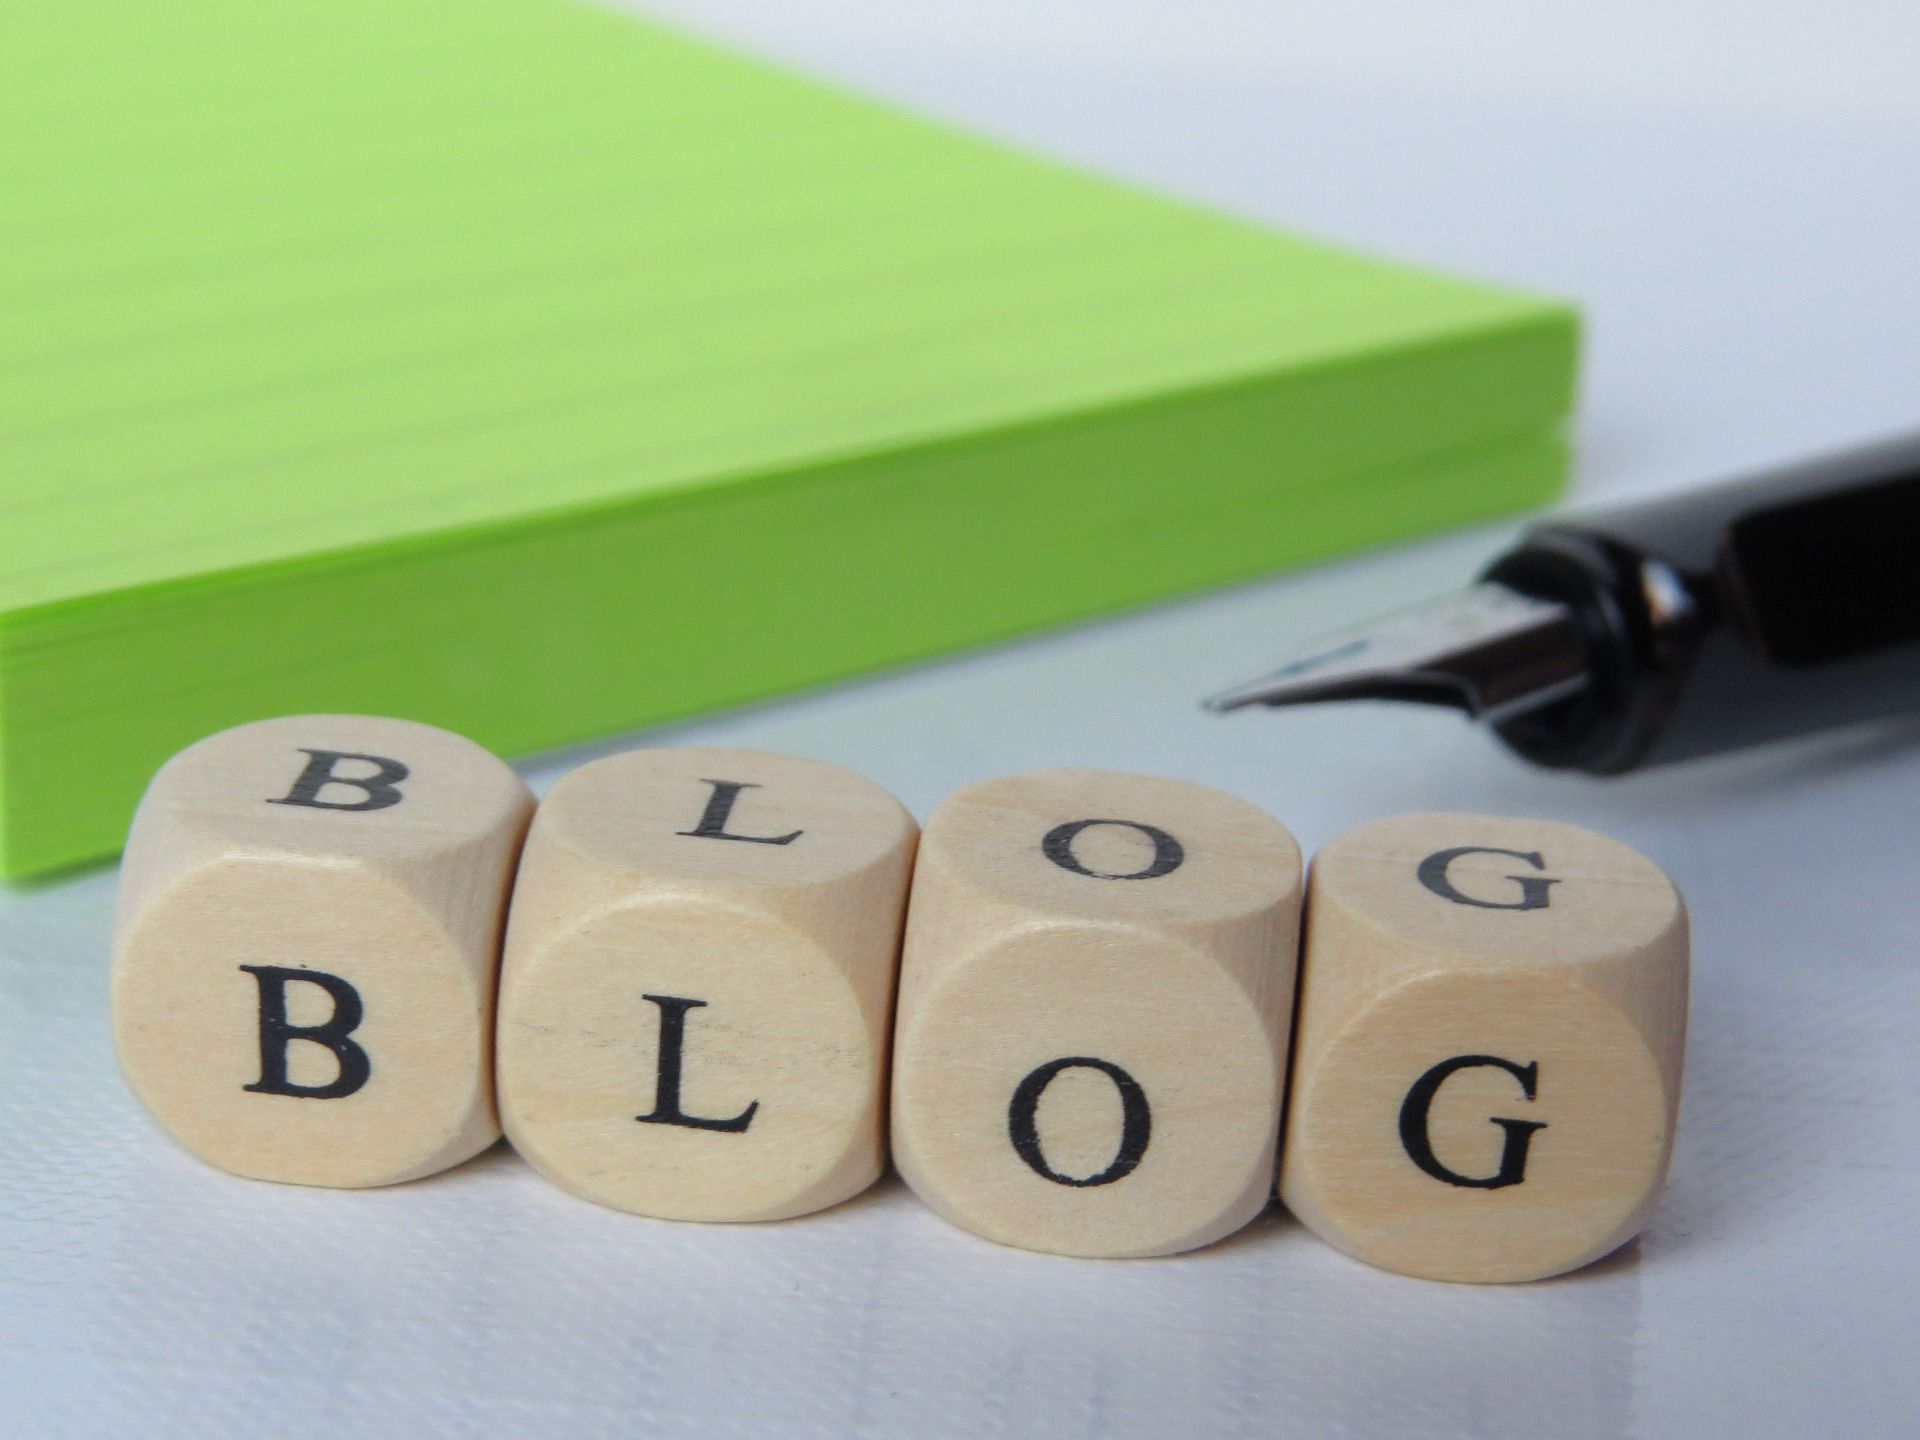 Want to be a full-time pro blogger? Be careful what you wish for